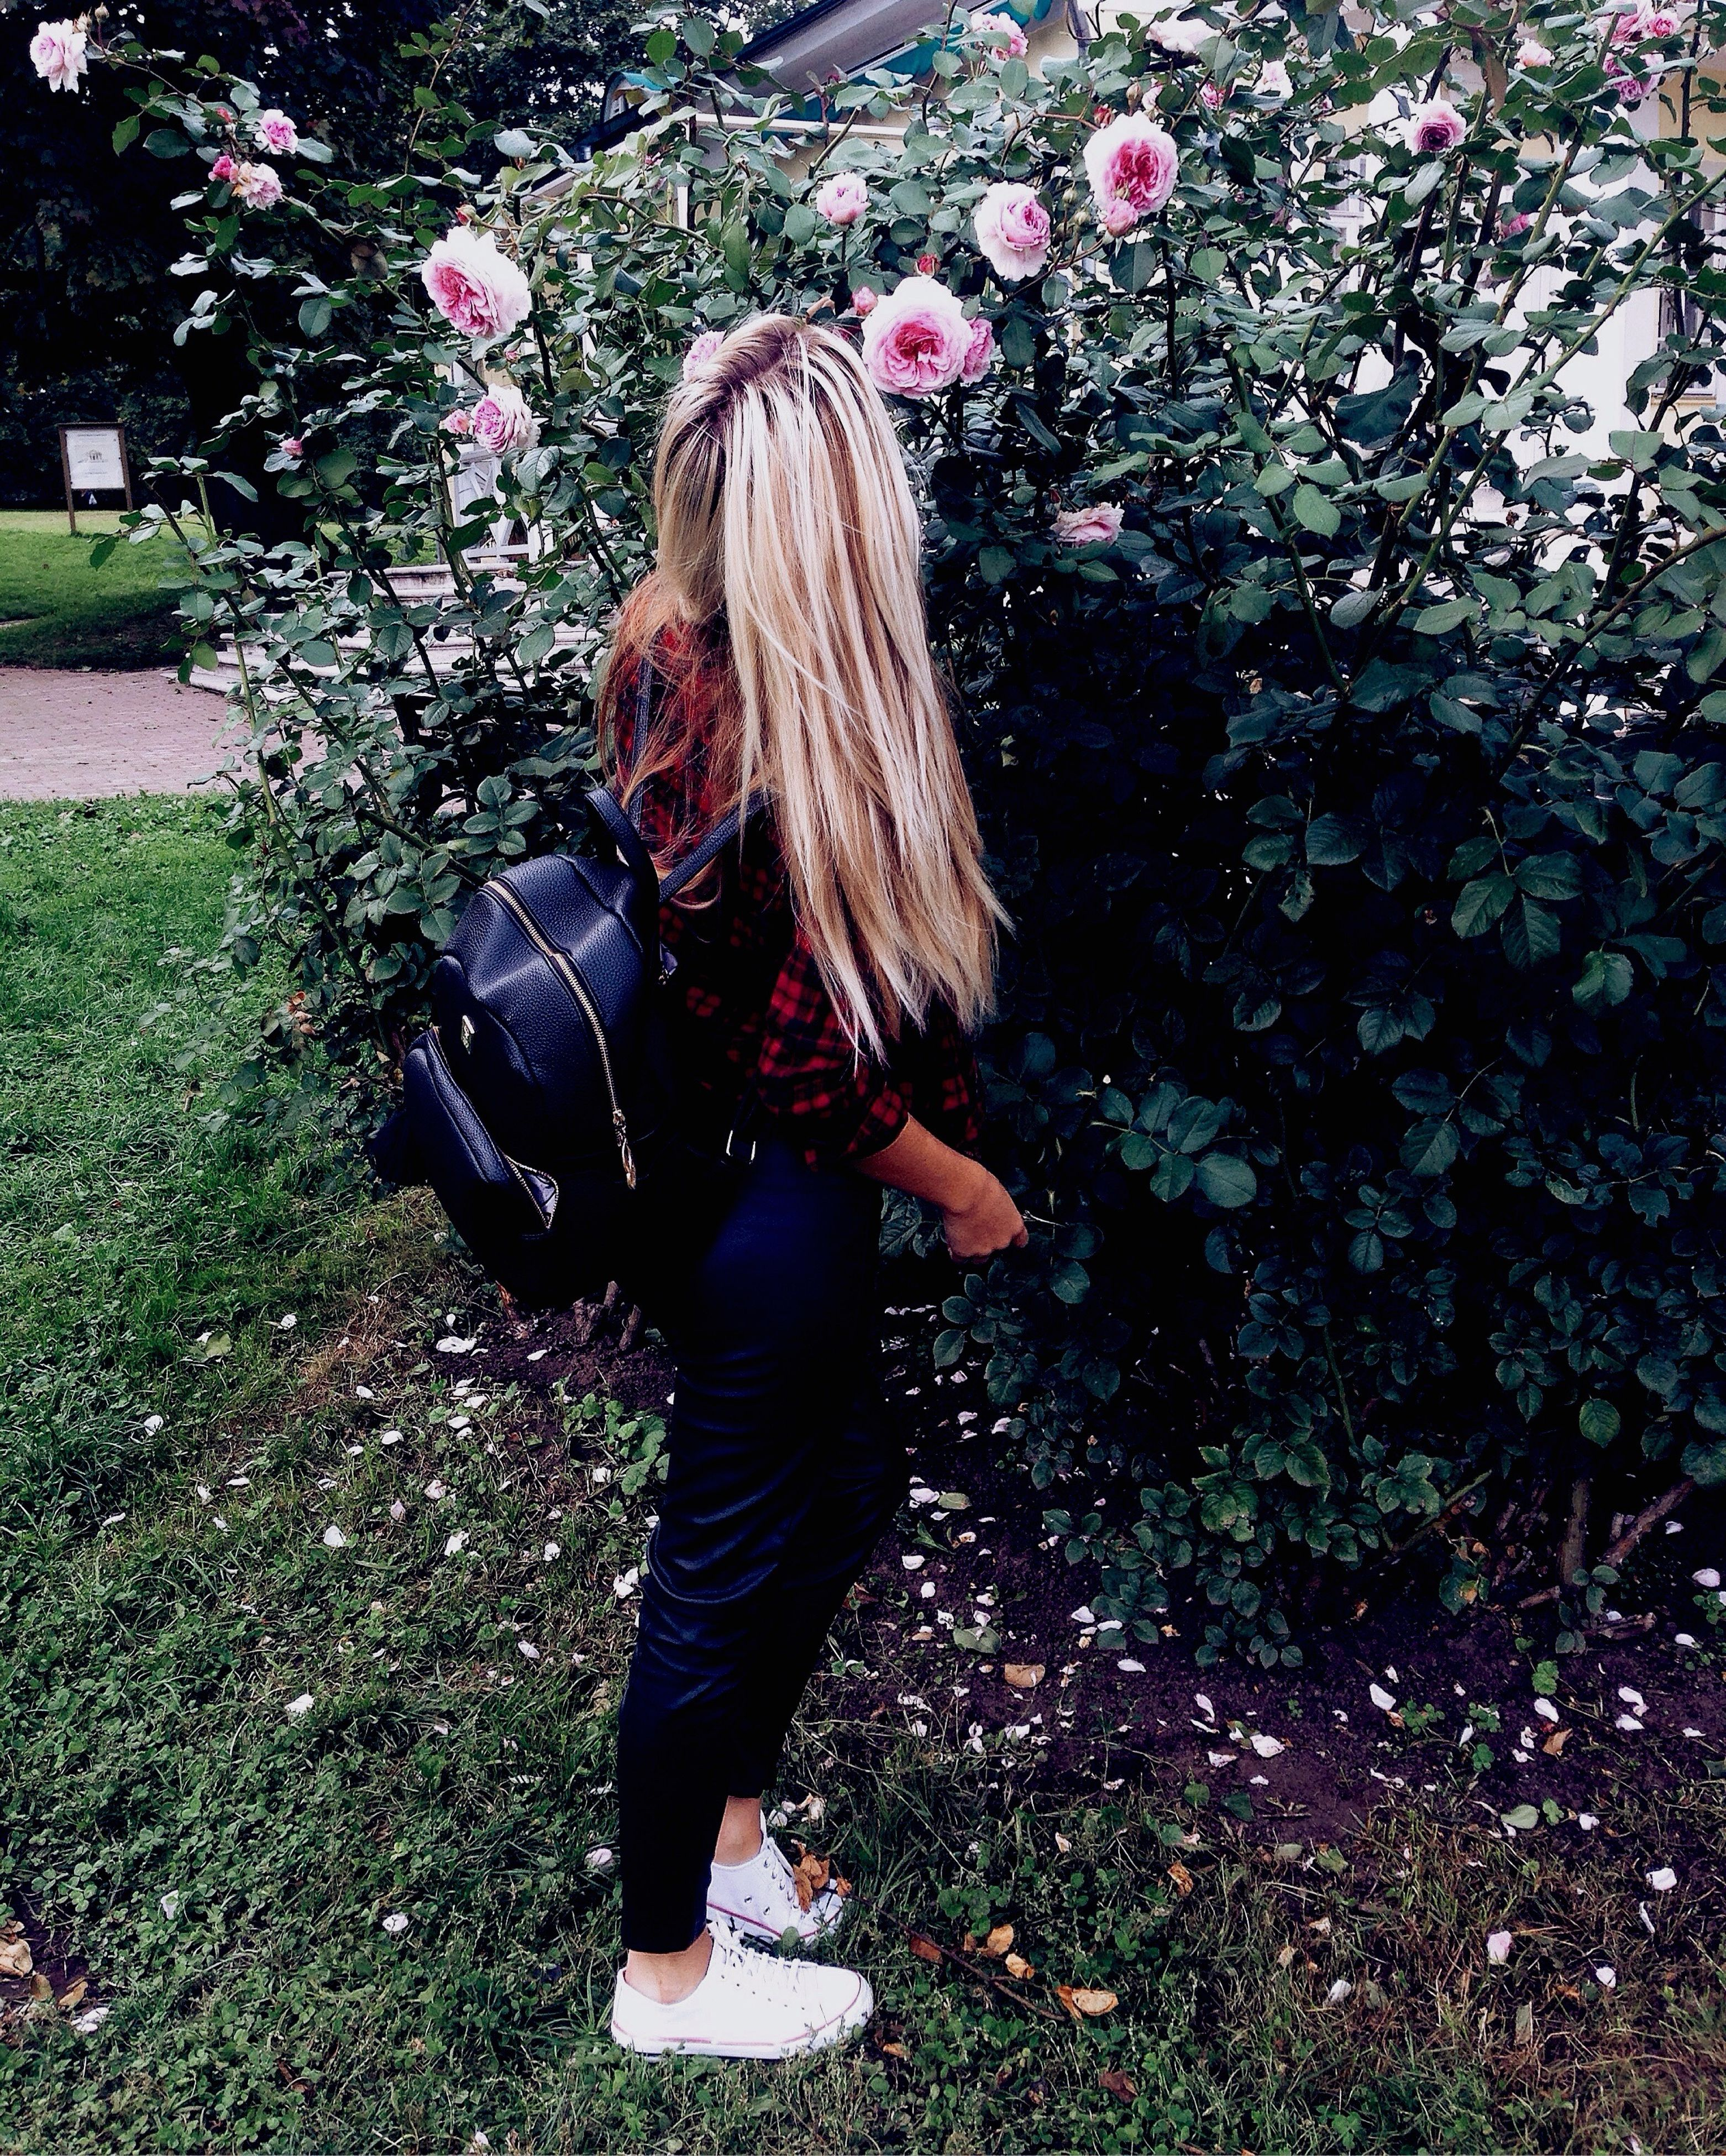 long hair, lifestyles, leisure activity, full length, casual clothing, tree, growth, leaf, plant, green color, day, nature, innocence, footpath, outdoors, flower, beauty in nature, tranquility